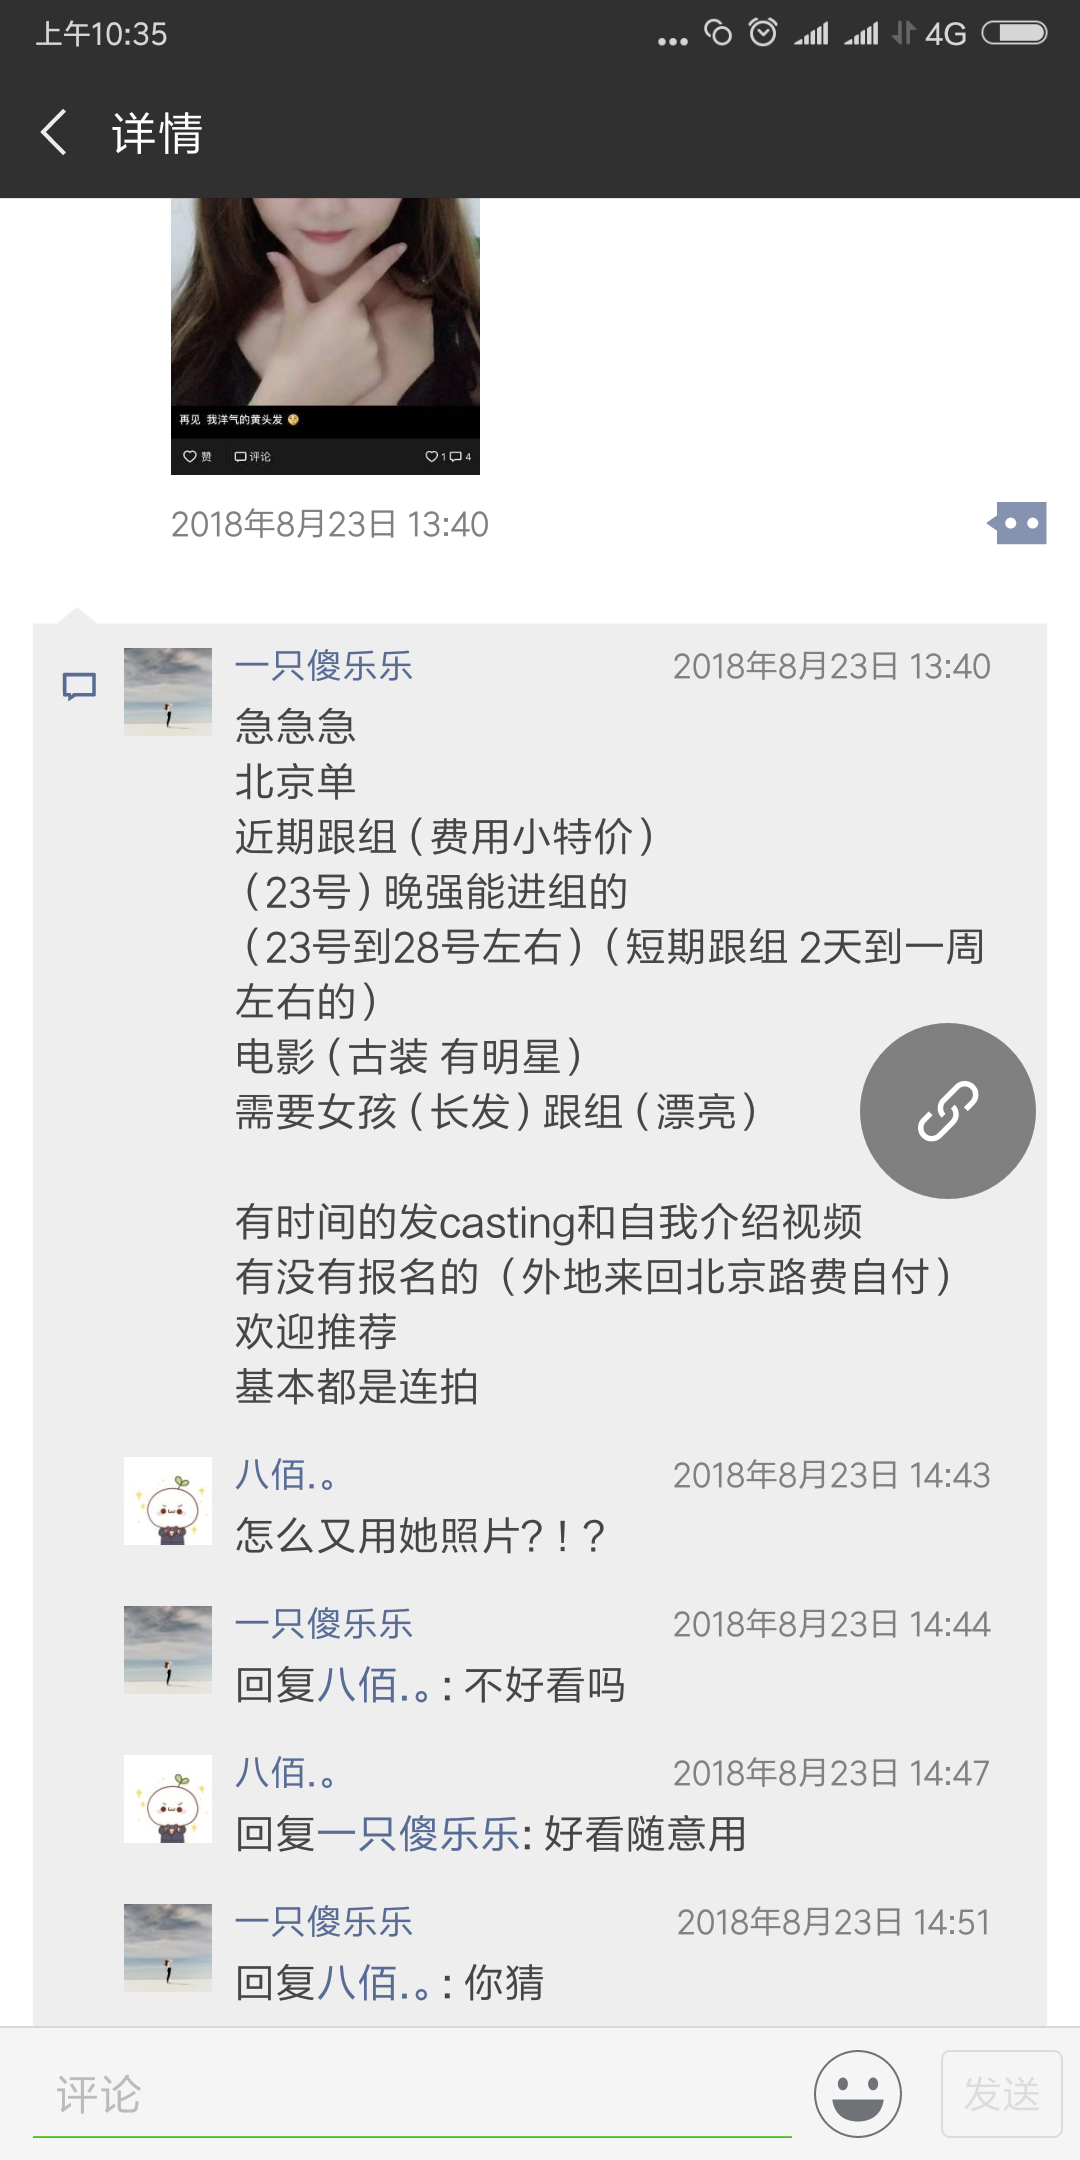 Screenshot_2018-09-16-10-35-14-086_com.tencent.mm.png